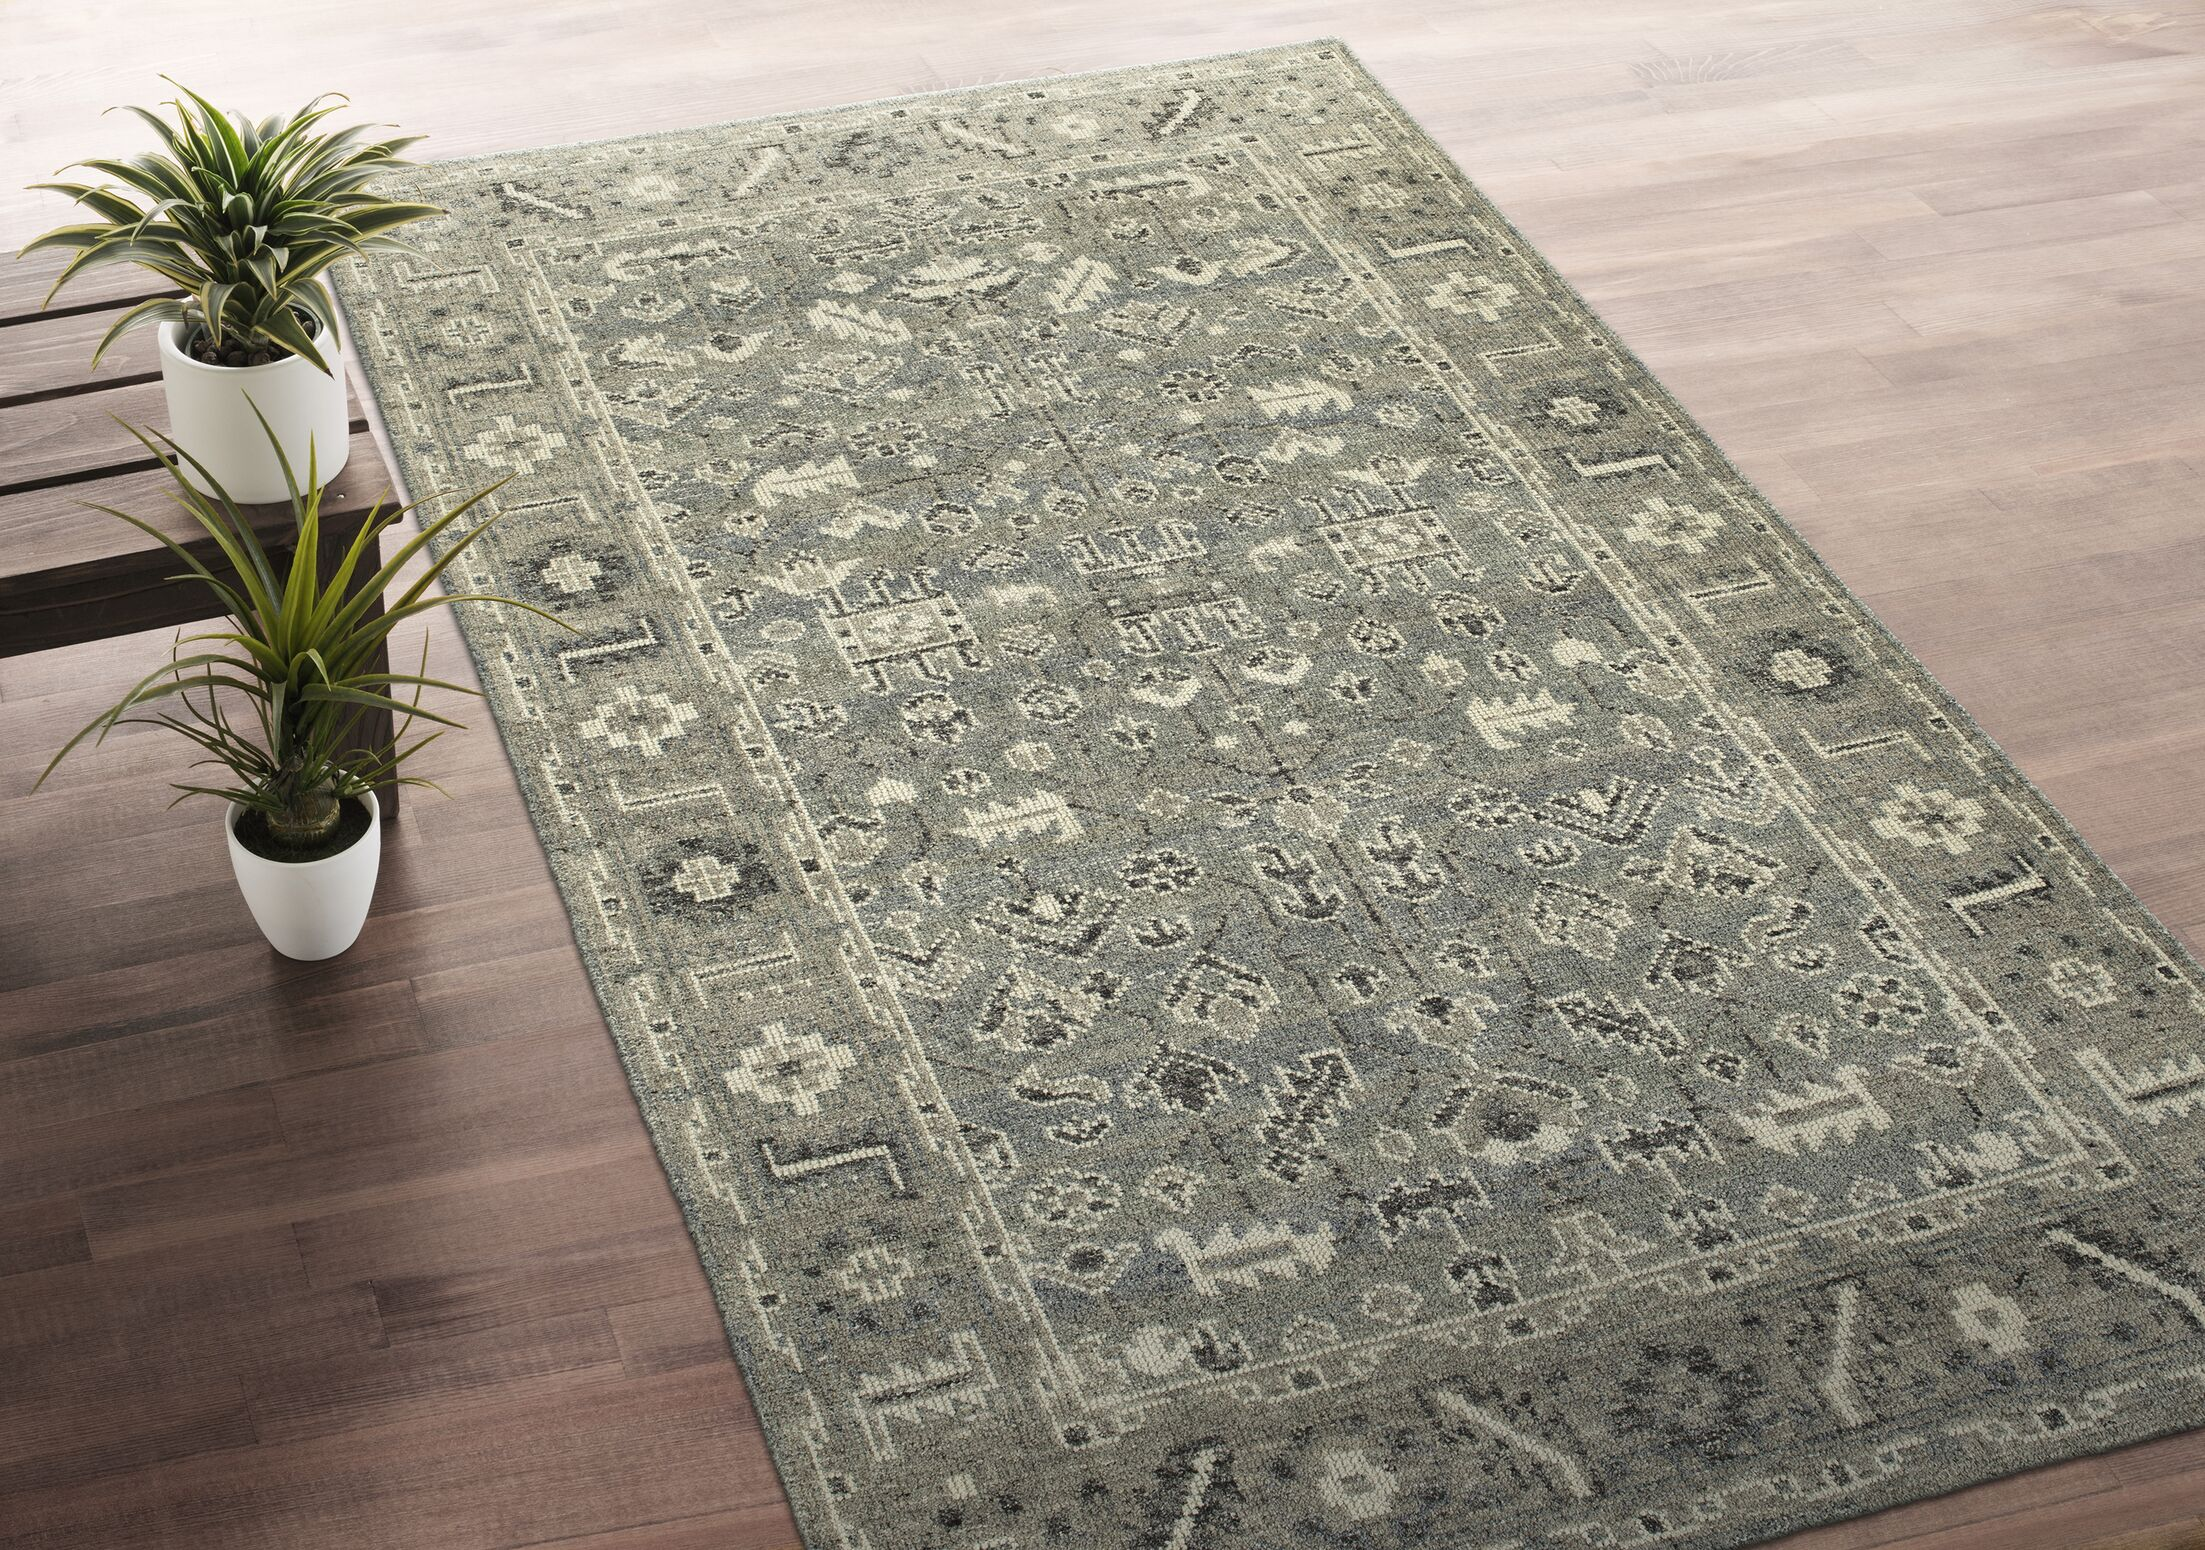 Romeo Hand-Knotted Wool Ivory/Charcoal Area Rug Rug Size: Rectangle 5'6